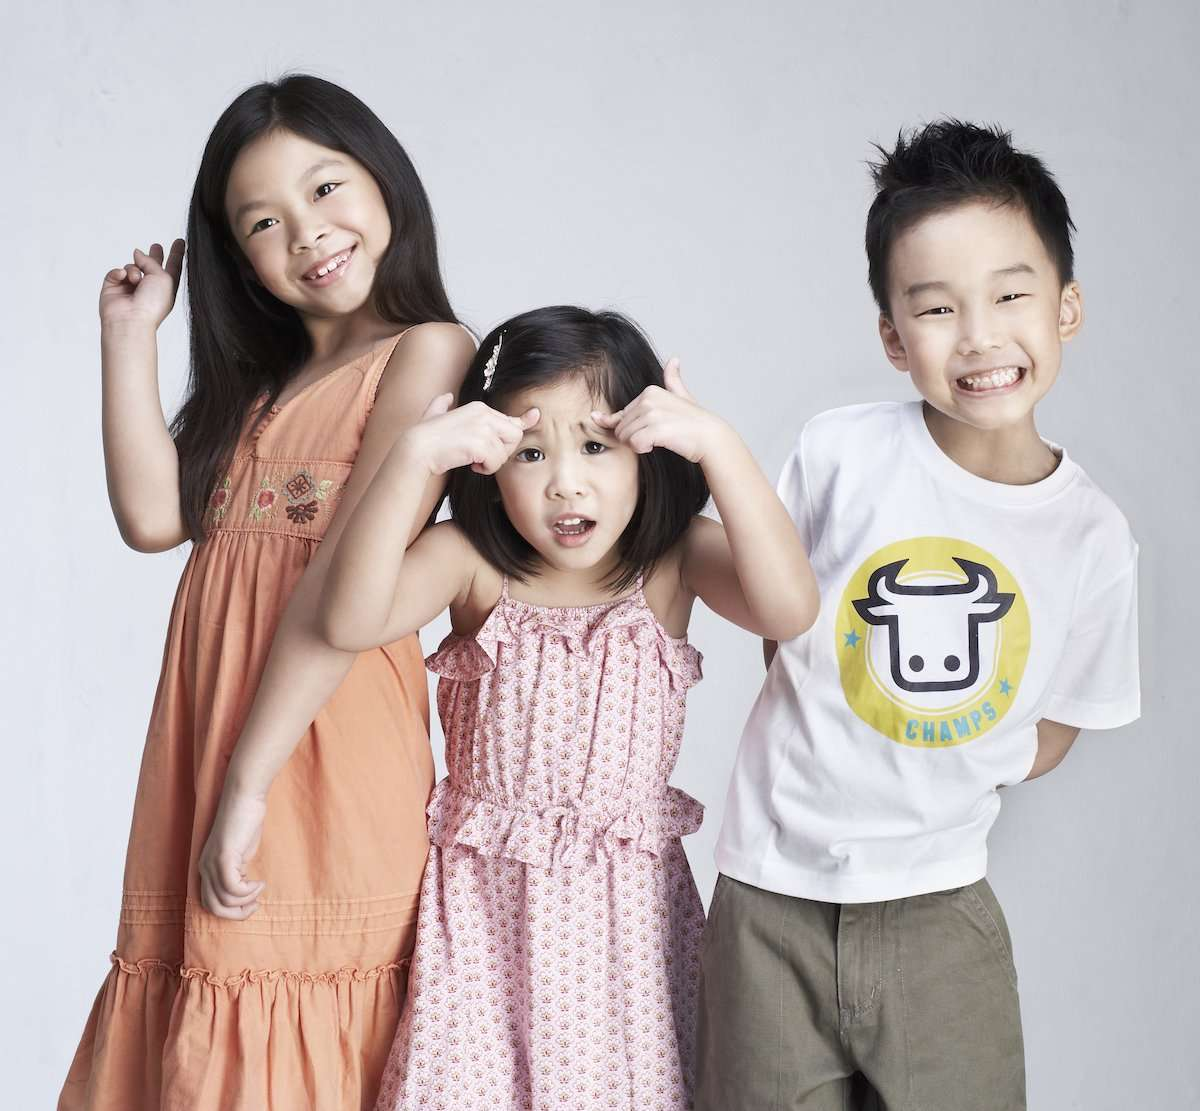 family photography shoot of 3 kids